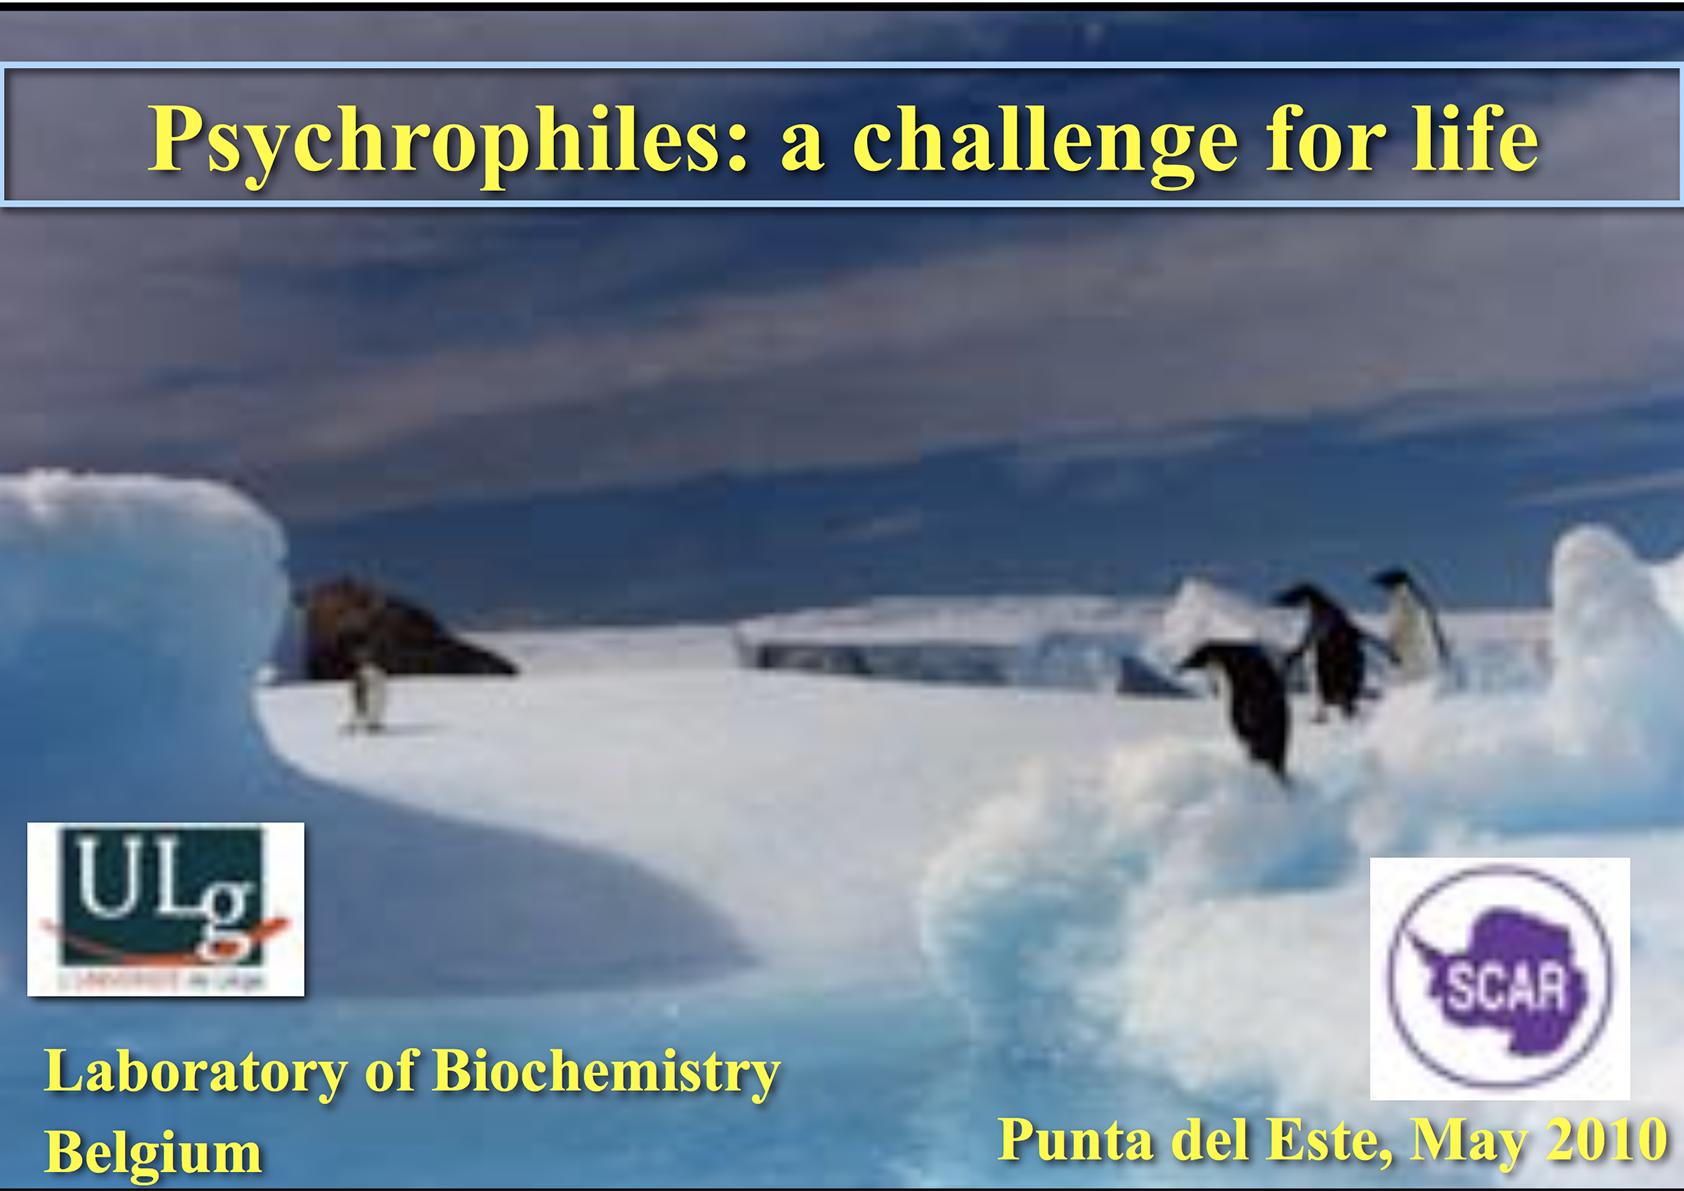 SCAR Lecture 2010: Psychrophiles: A Challenge for Life